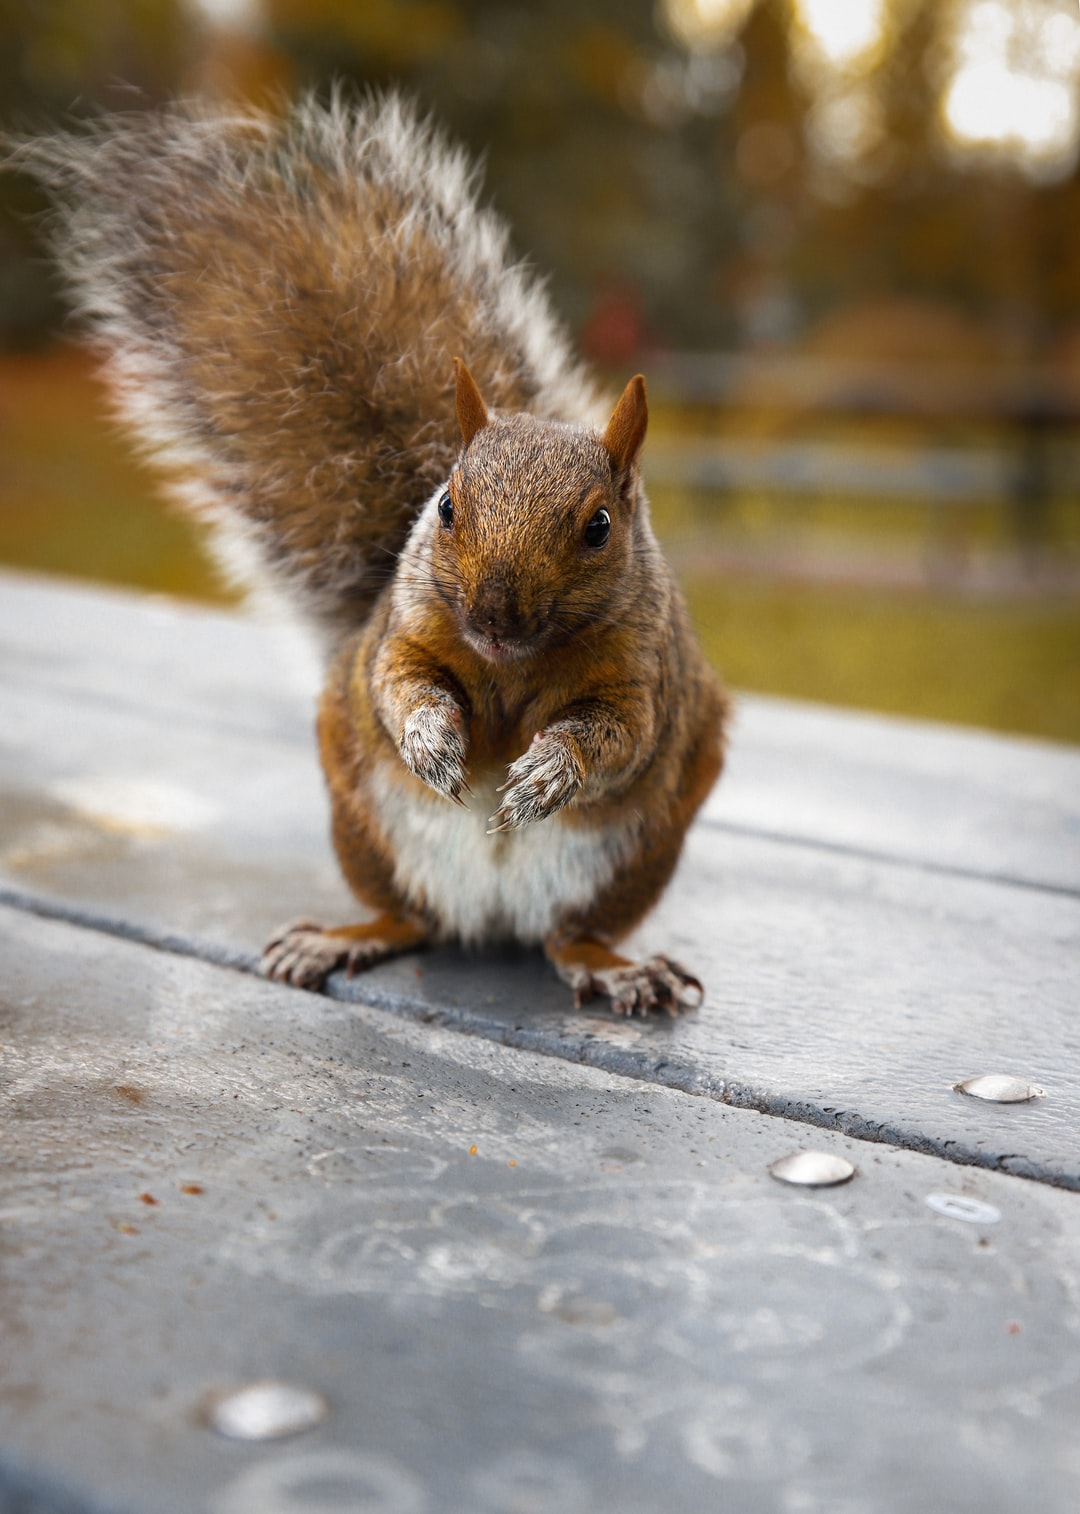 Cute baby brown squirrel standing on a table